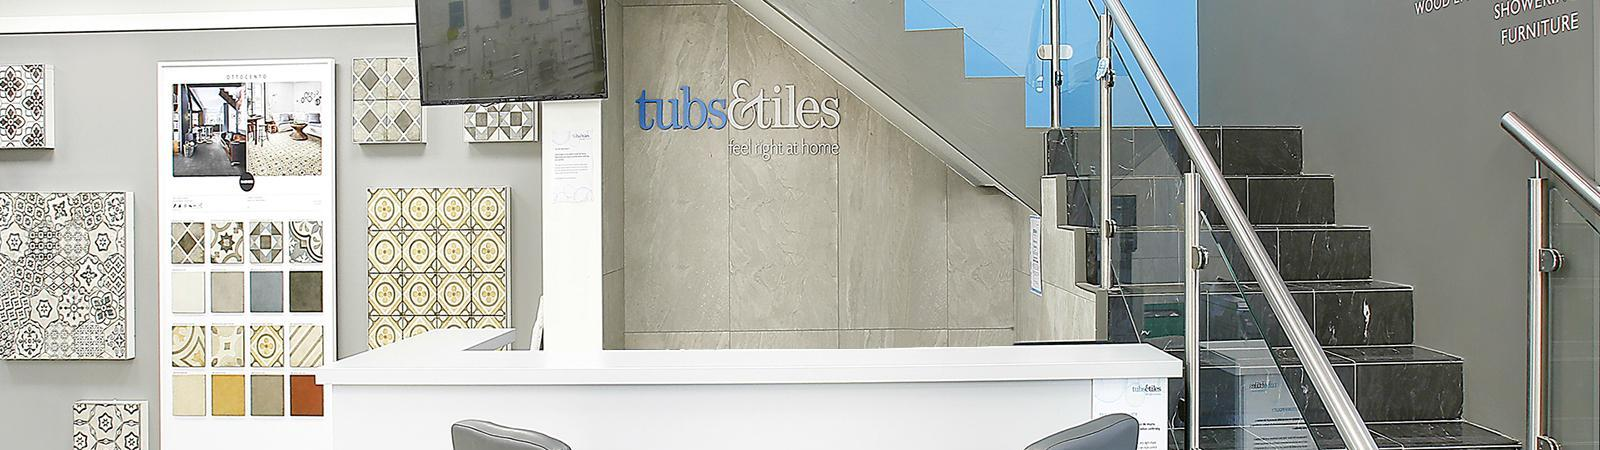 careers in Tubs & Tiles